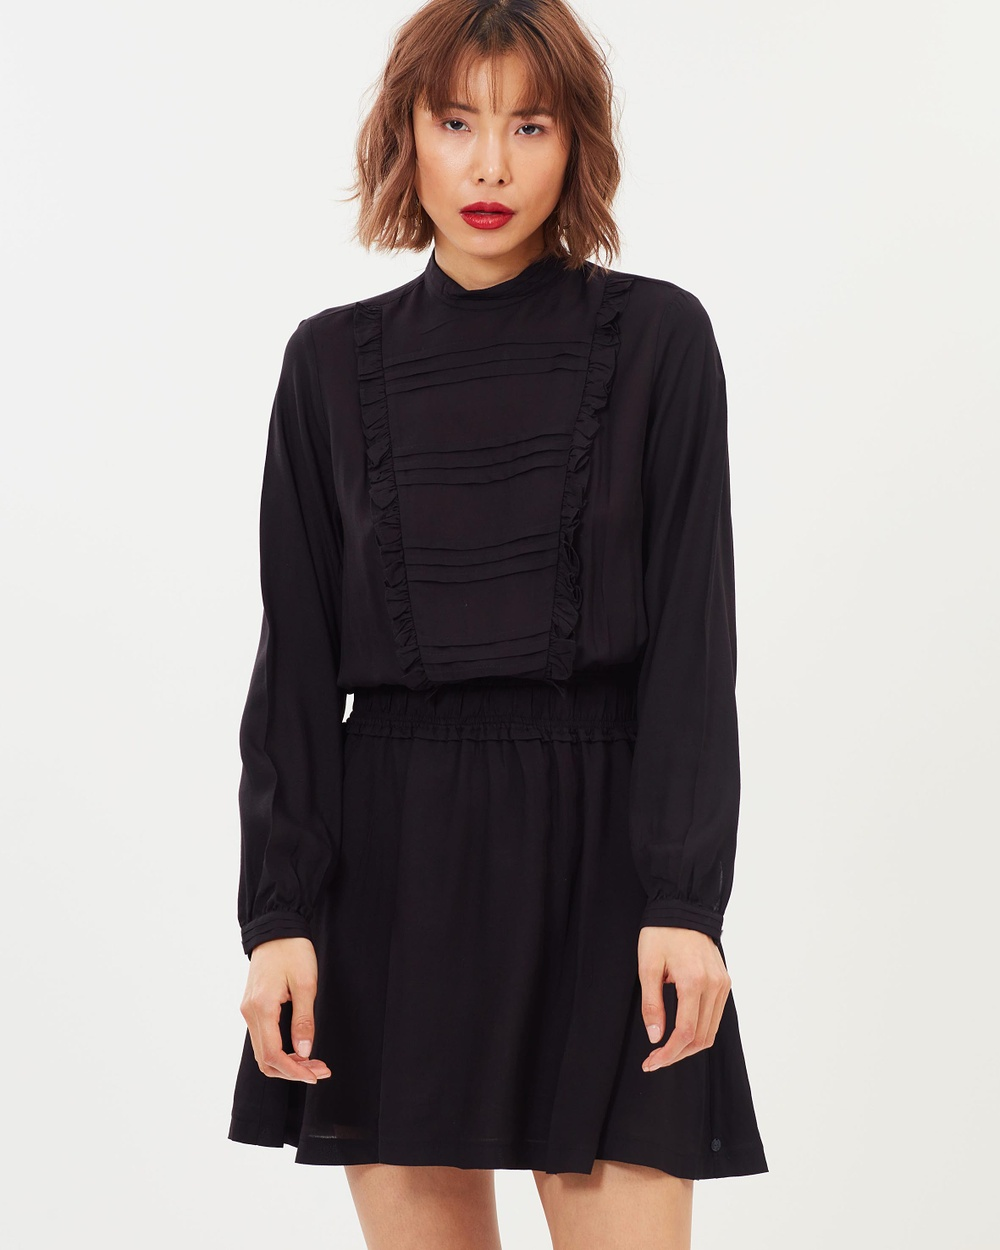 Maison Scotch LS High Neck Dress with Pintuck and Ruffle Details Dresses Black LS High Neck Dress with Pintuck and Ruffle Details